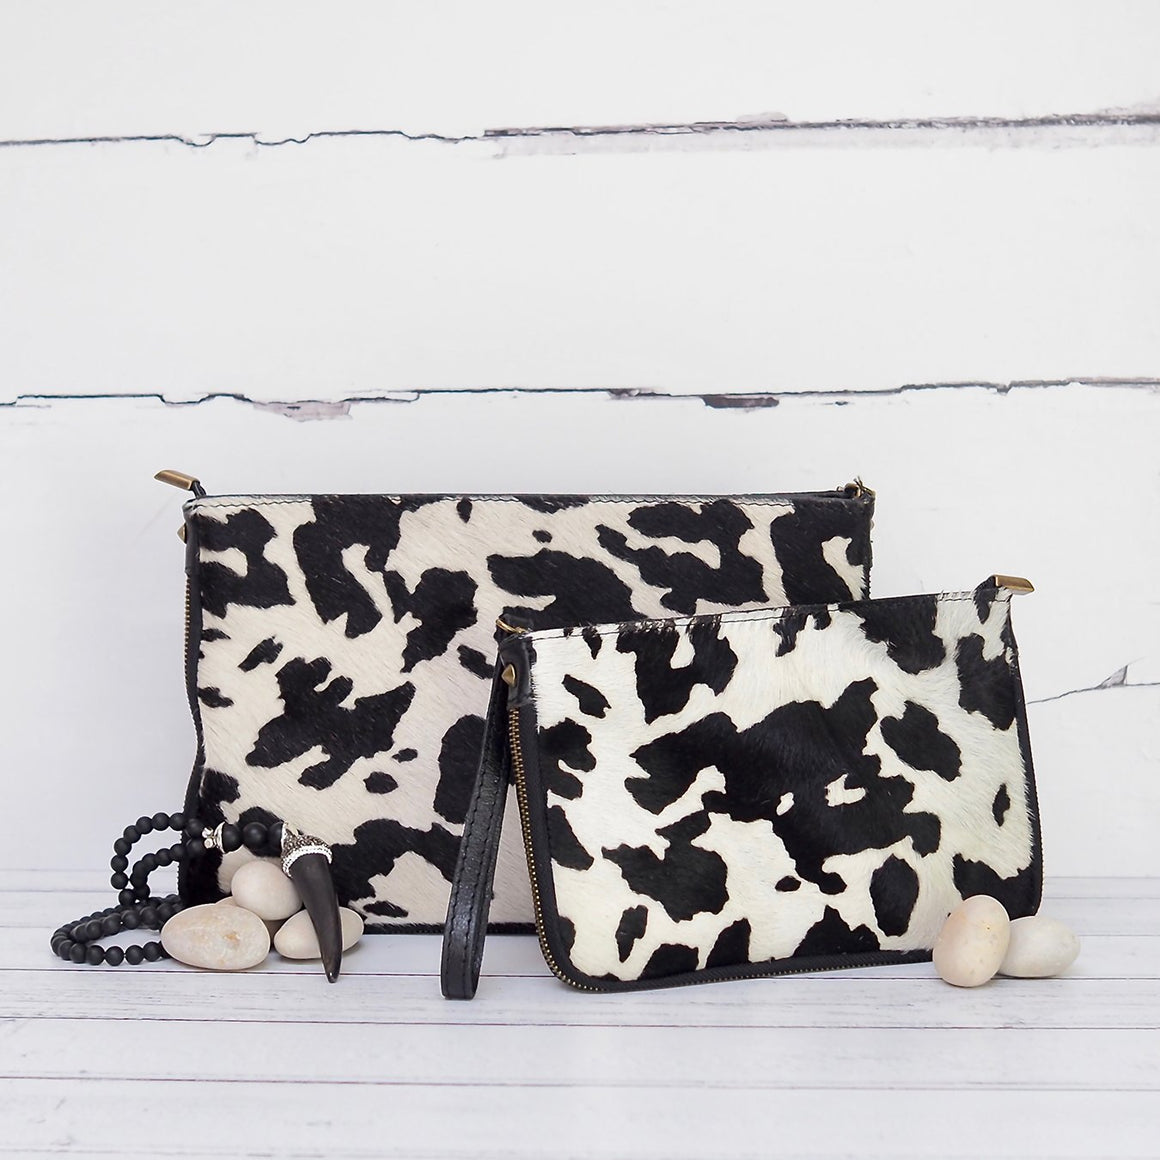 Large Cow Print Clutch Bag - Villancher Gifts &  Fashion Accessories